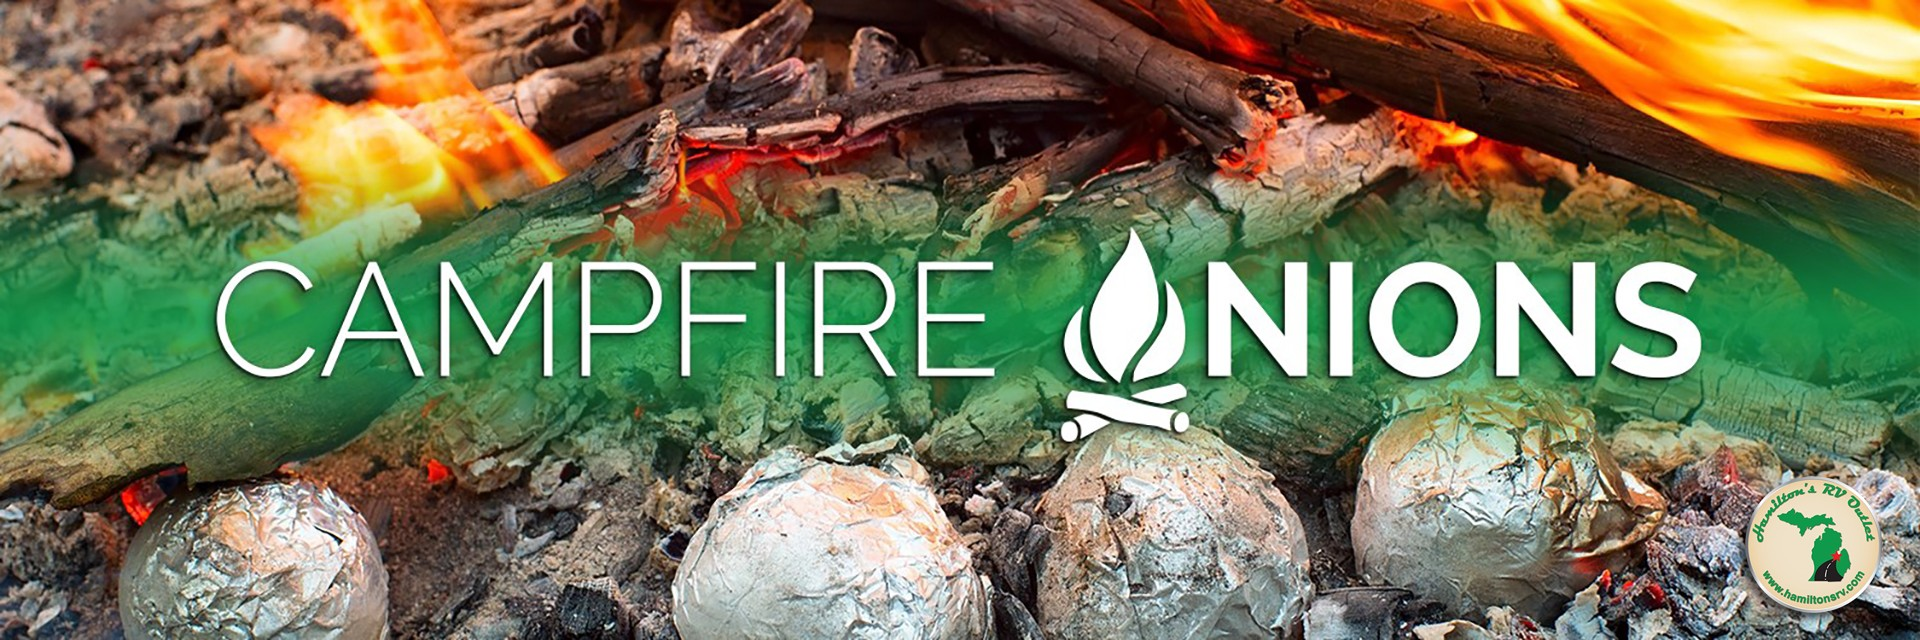 Campfire Onions Banner